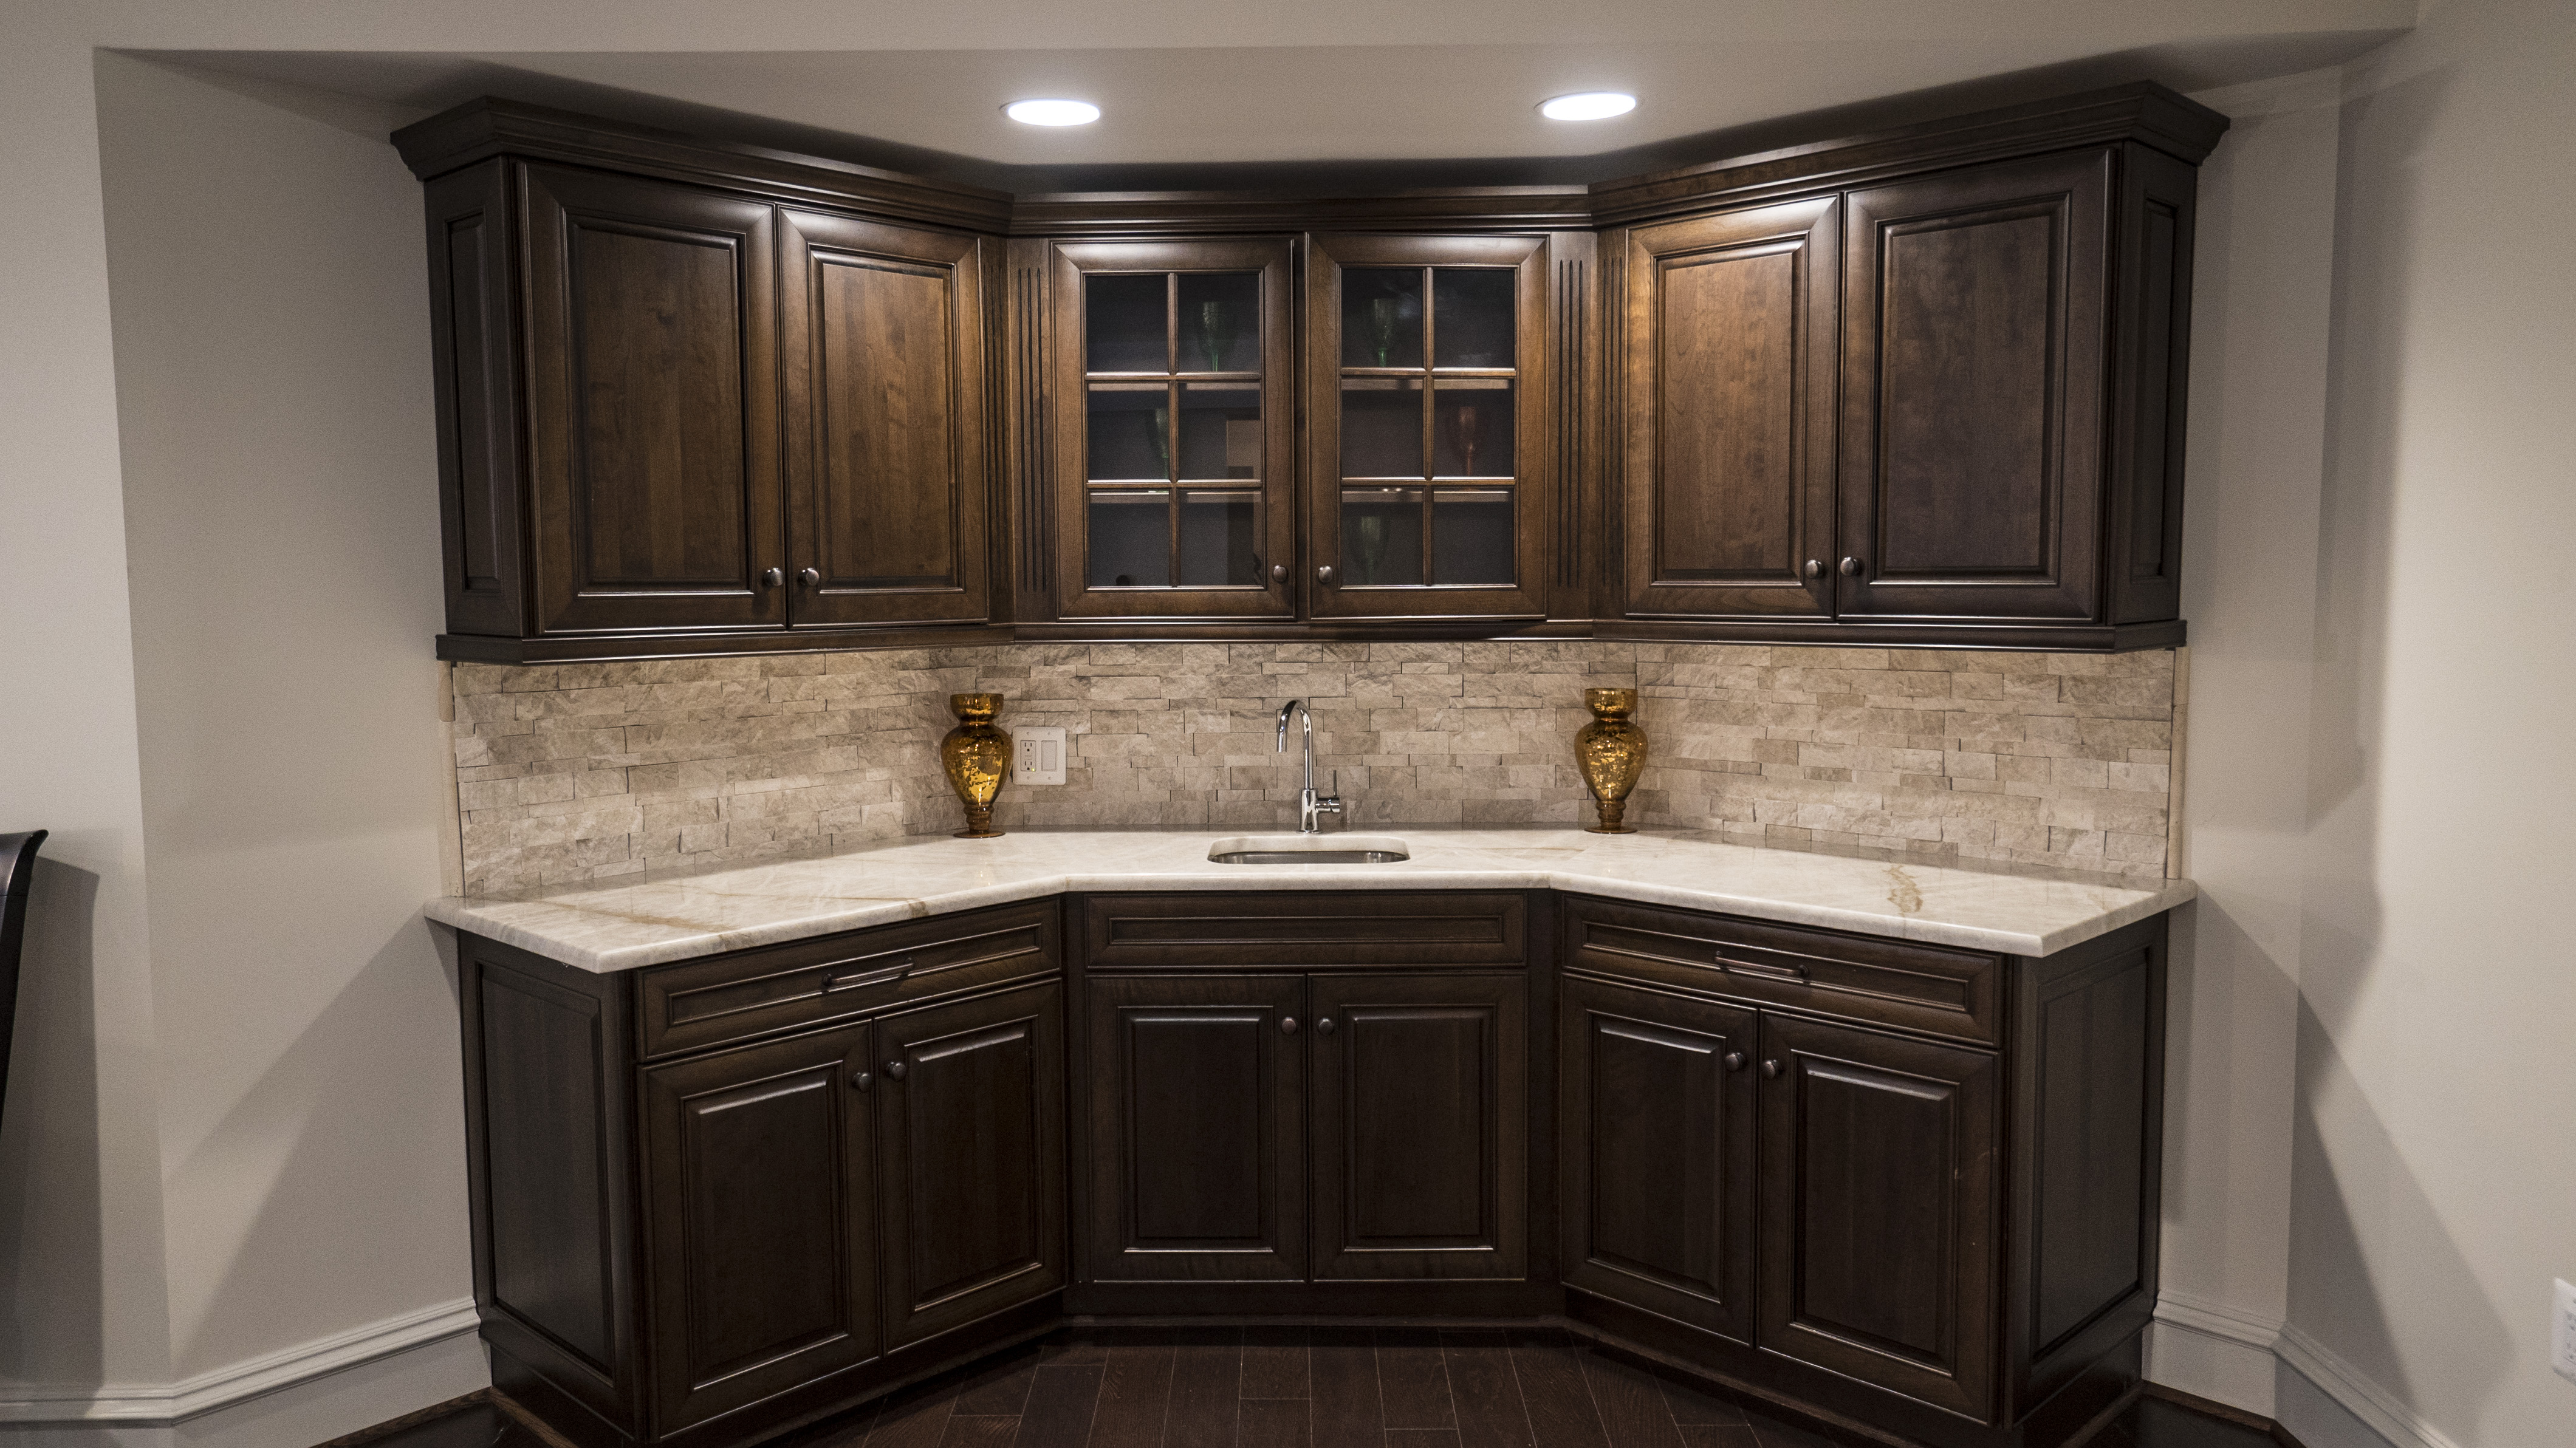 The Naffau0027s Love Their New Kitchen And Said, U201cIf We Have Any Home  Improvement Projects In The Future, USA Cabinets Would Be Our First Choice.u201d